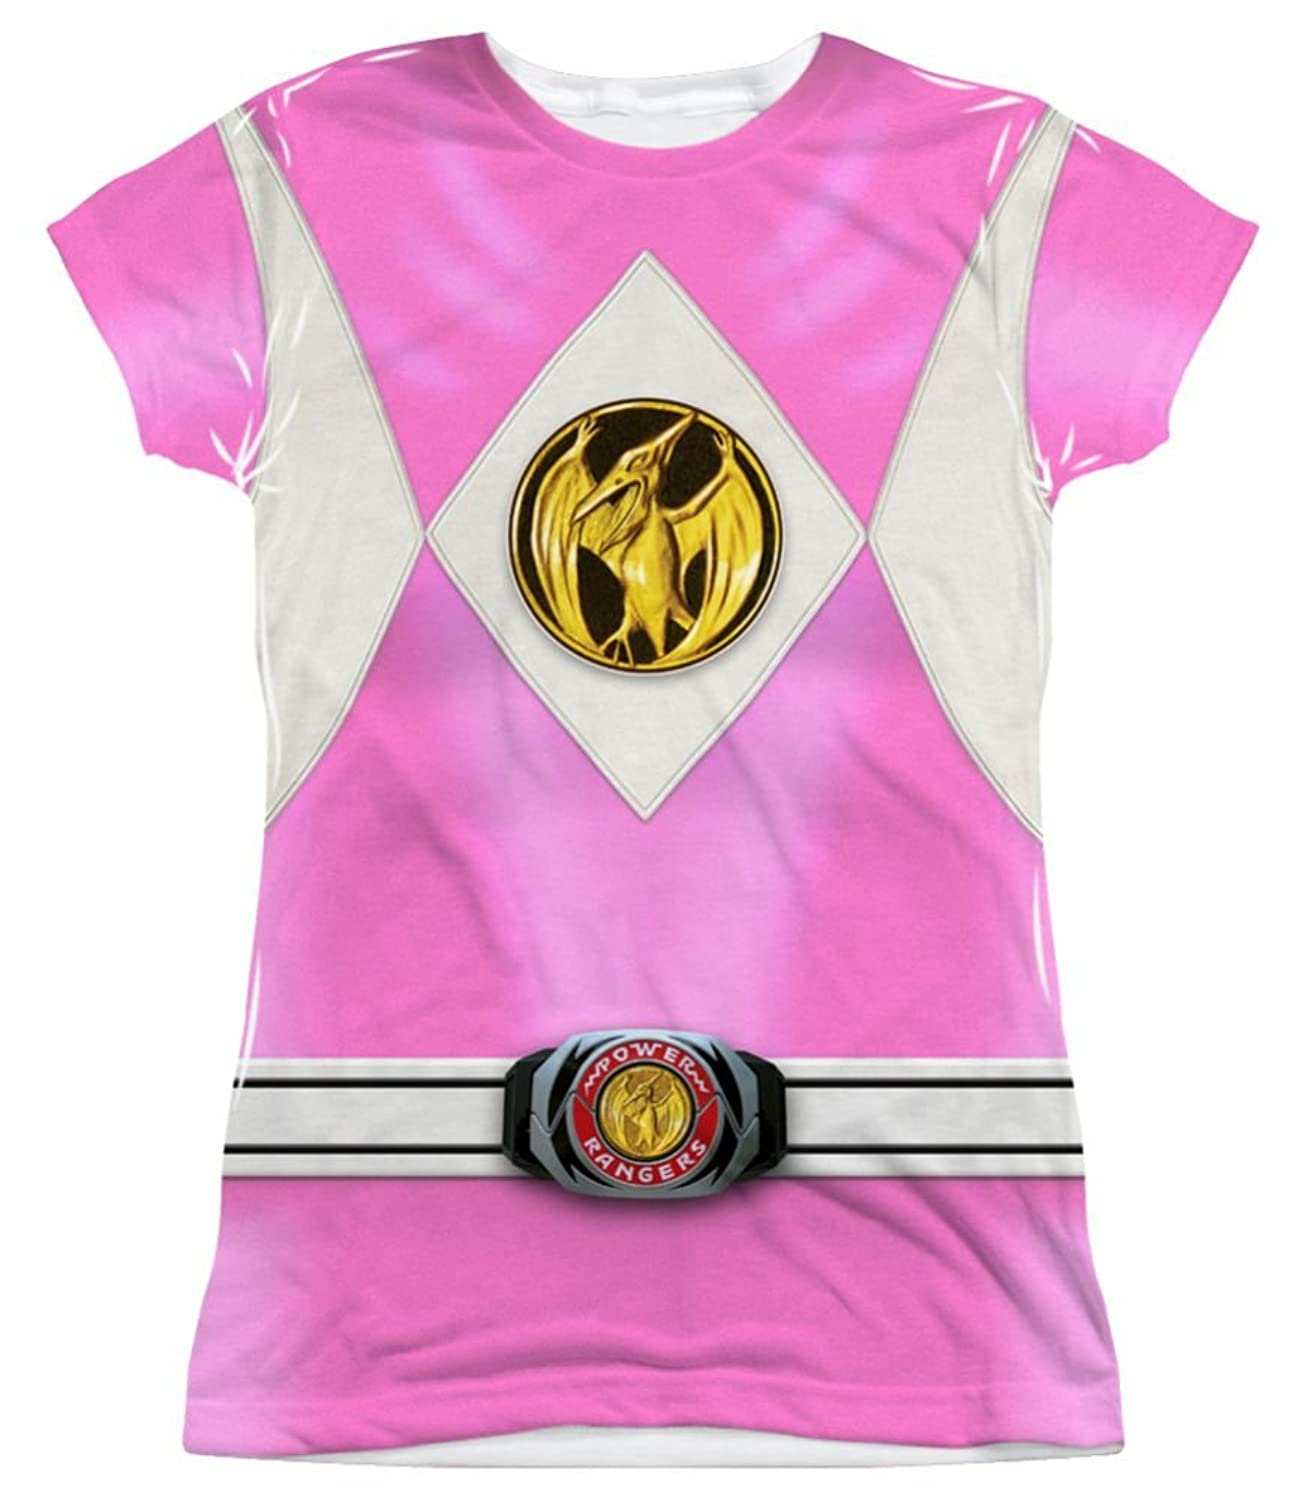 986fbce5b33 Amazon.com  Mighty Morphin Power Rangers Pink Ranger Emblem Costume Junior  Fit - All Over Front T-Shirt  Clothing